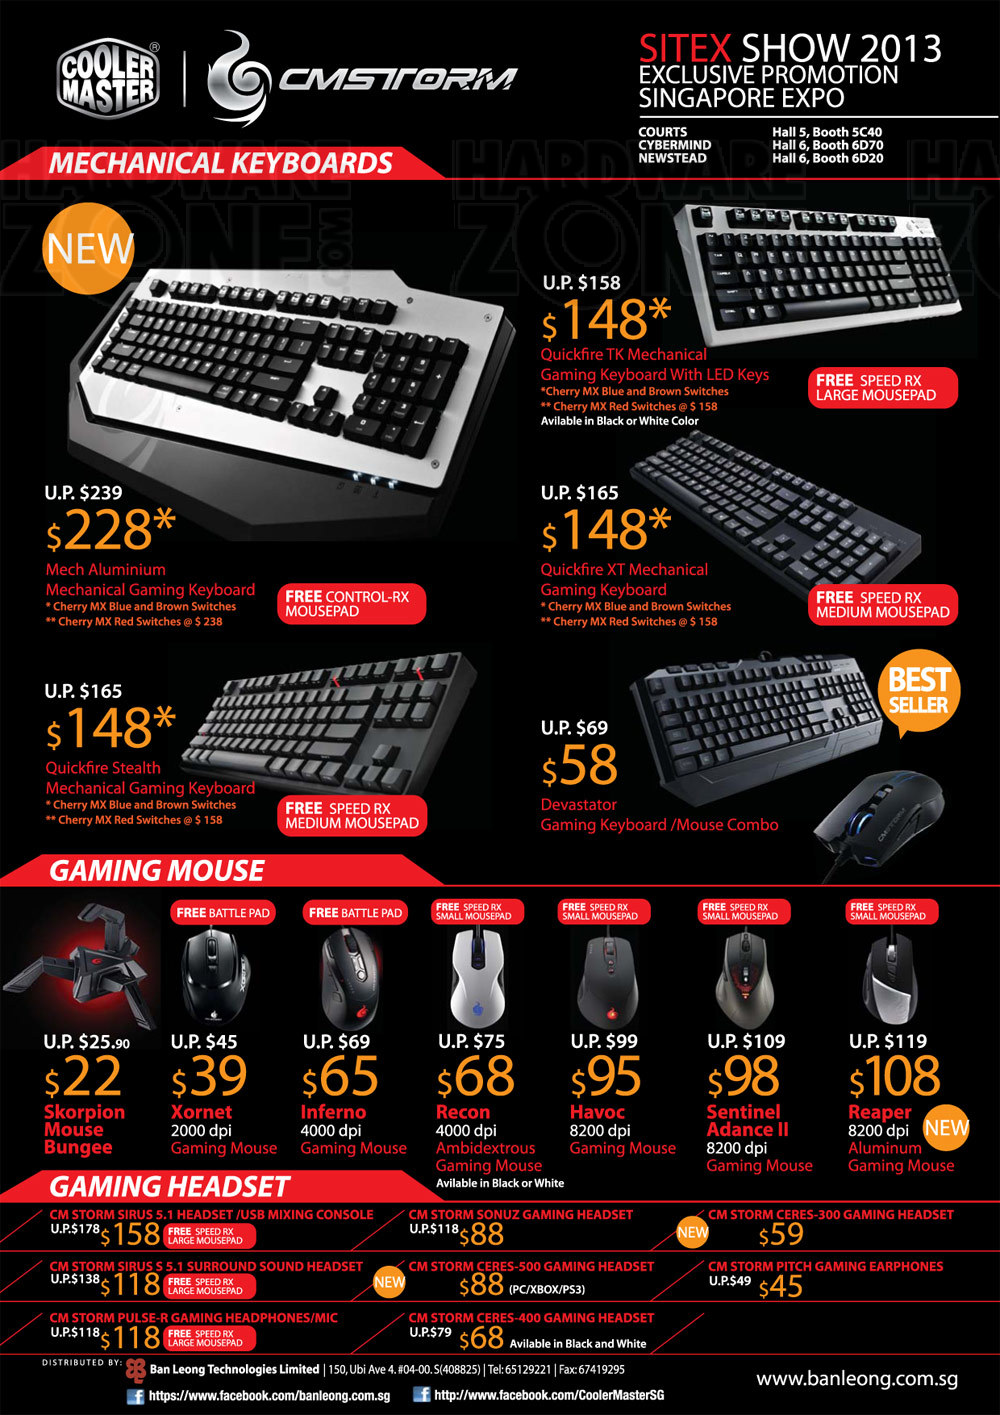 Cooler Master keyboard and mouse